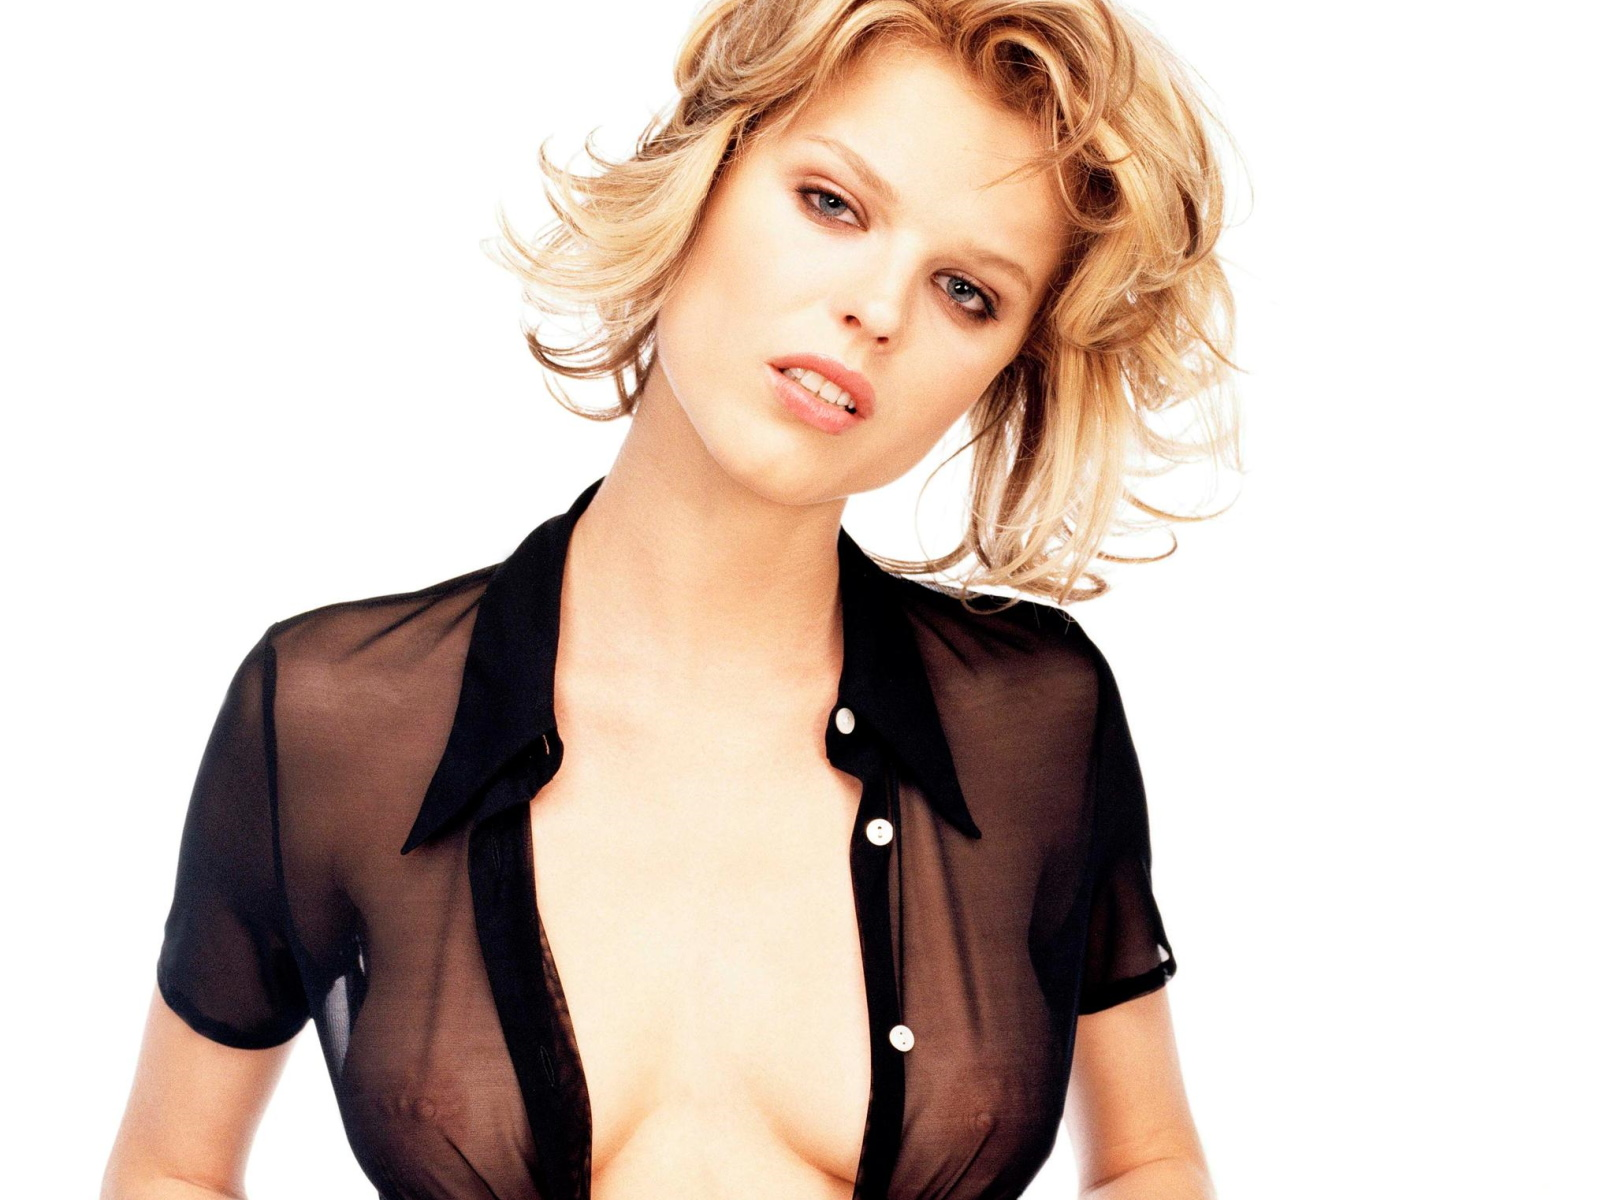 Eva Herzigova wallpaper